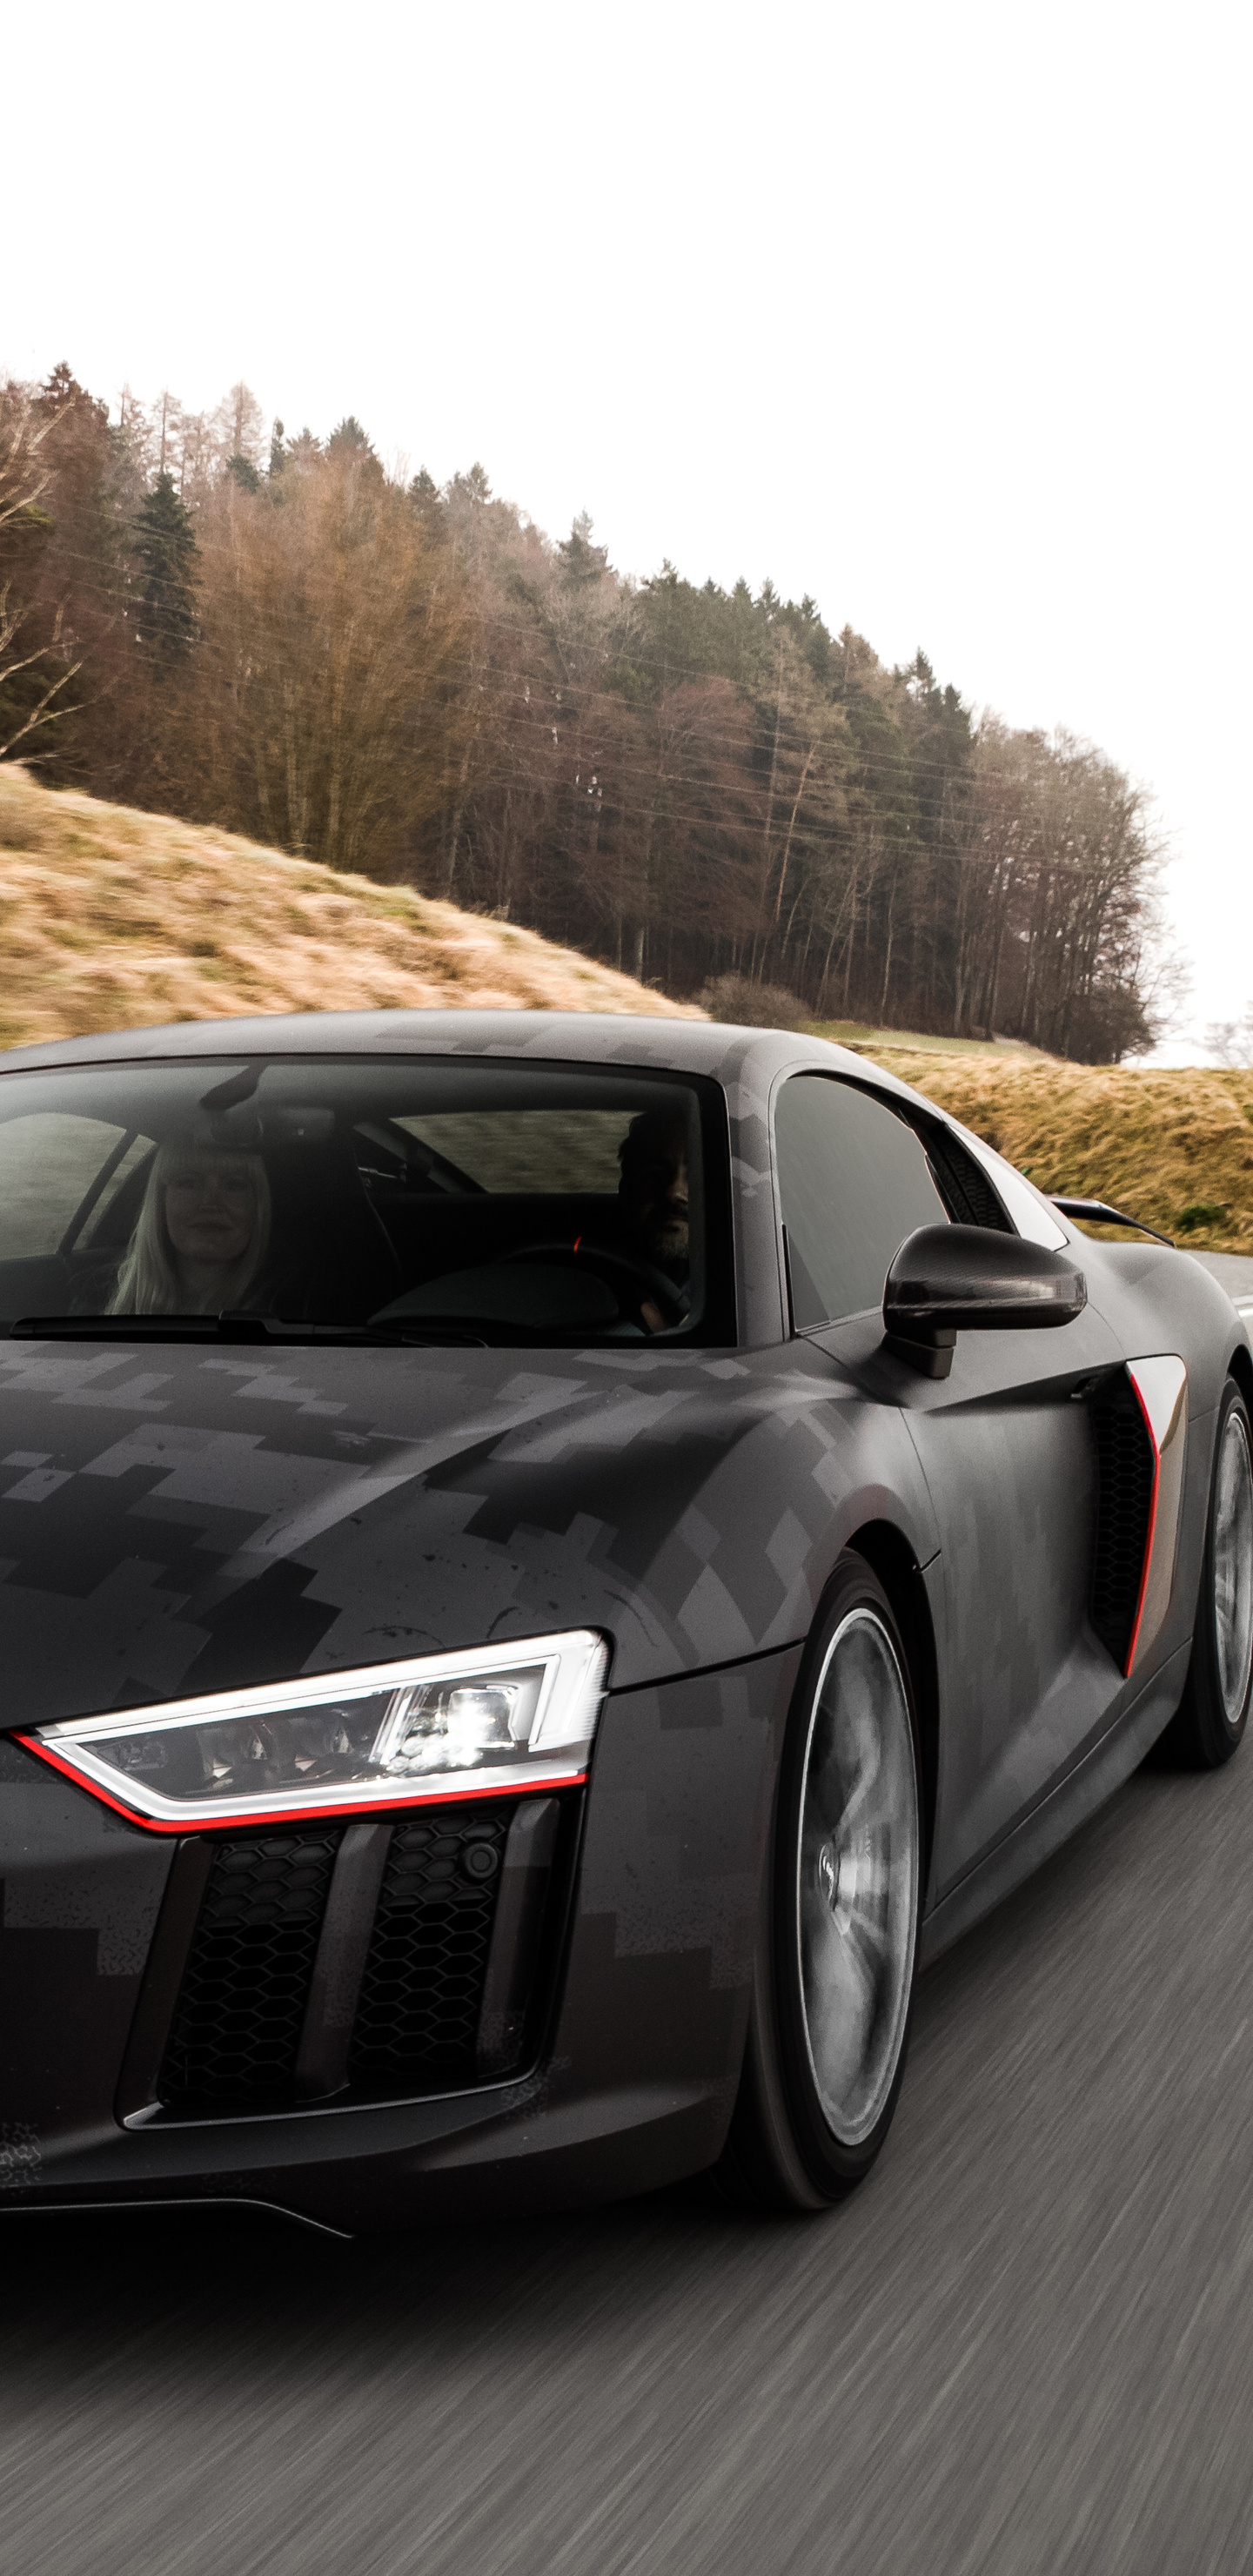 1440x2960 Black Audi R8 V10 Plus Samsung Galaxy Note 9 8 S9 S8 S8 Qhd Hd 4k Wallpapers Images Backgrounds Photos And Pictures